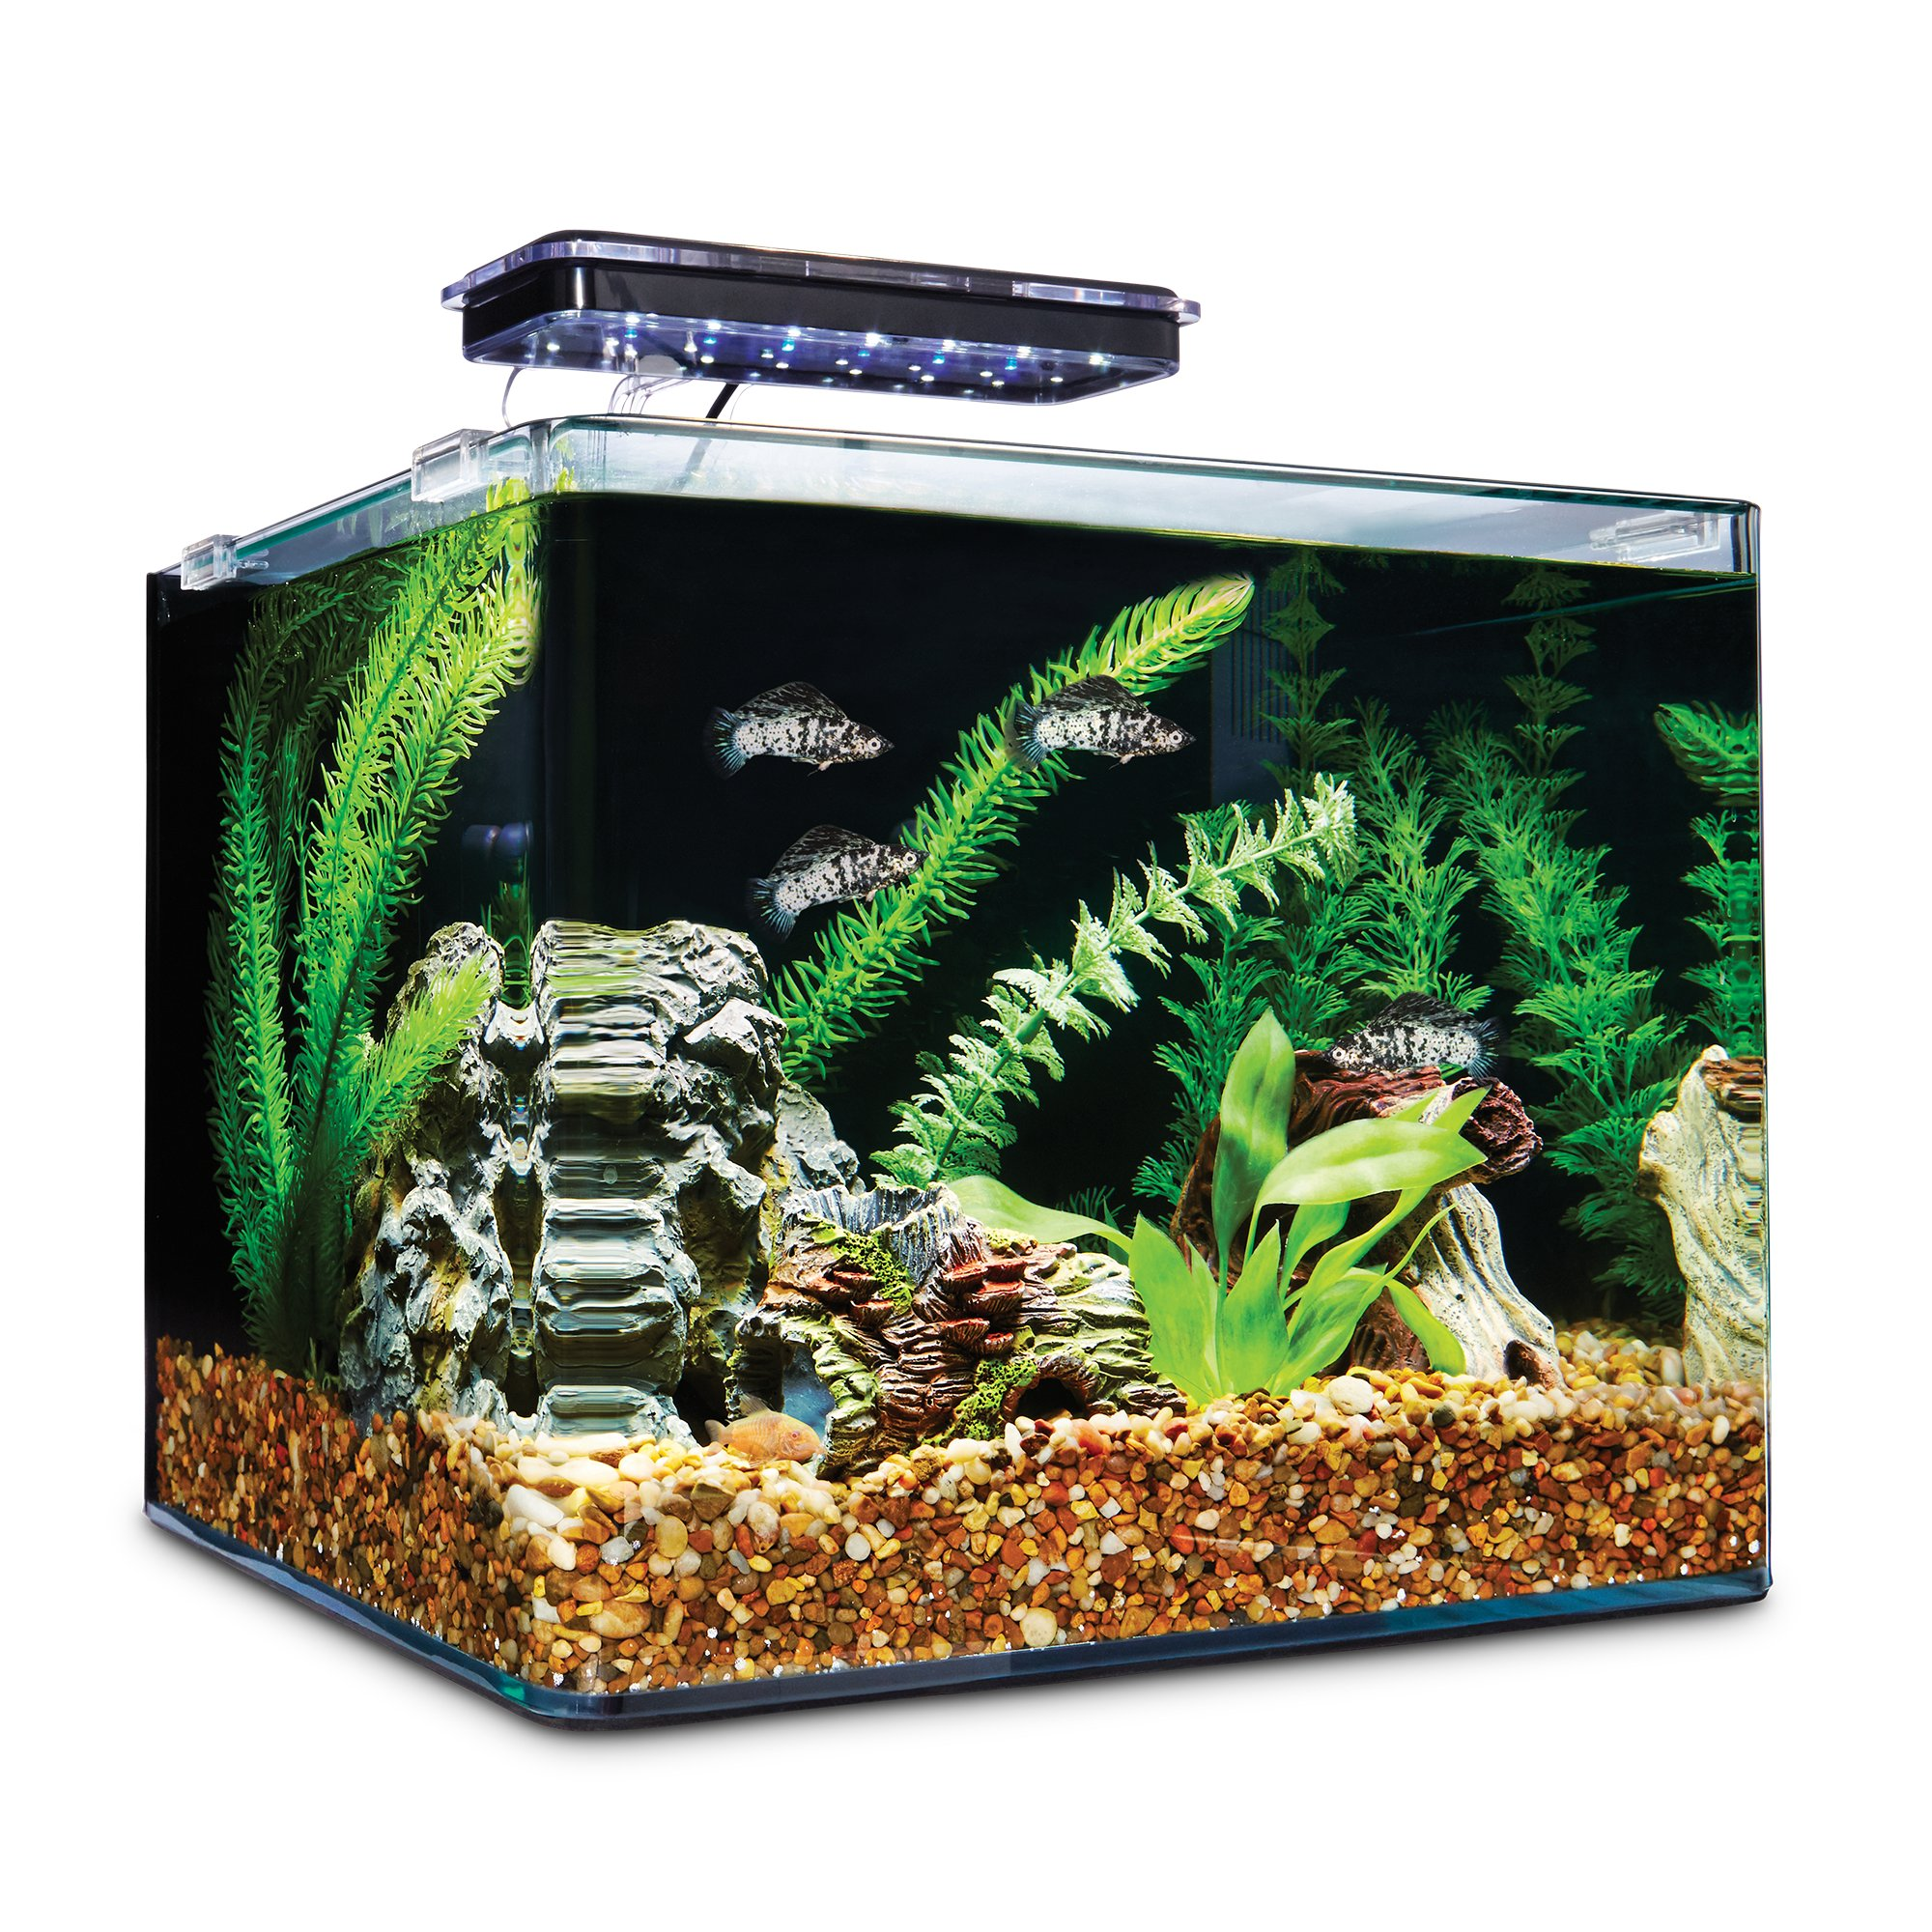 Fish Tanks Saltwater & Freshwater Aquariums & Supplies